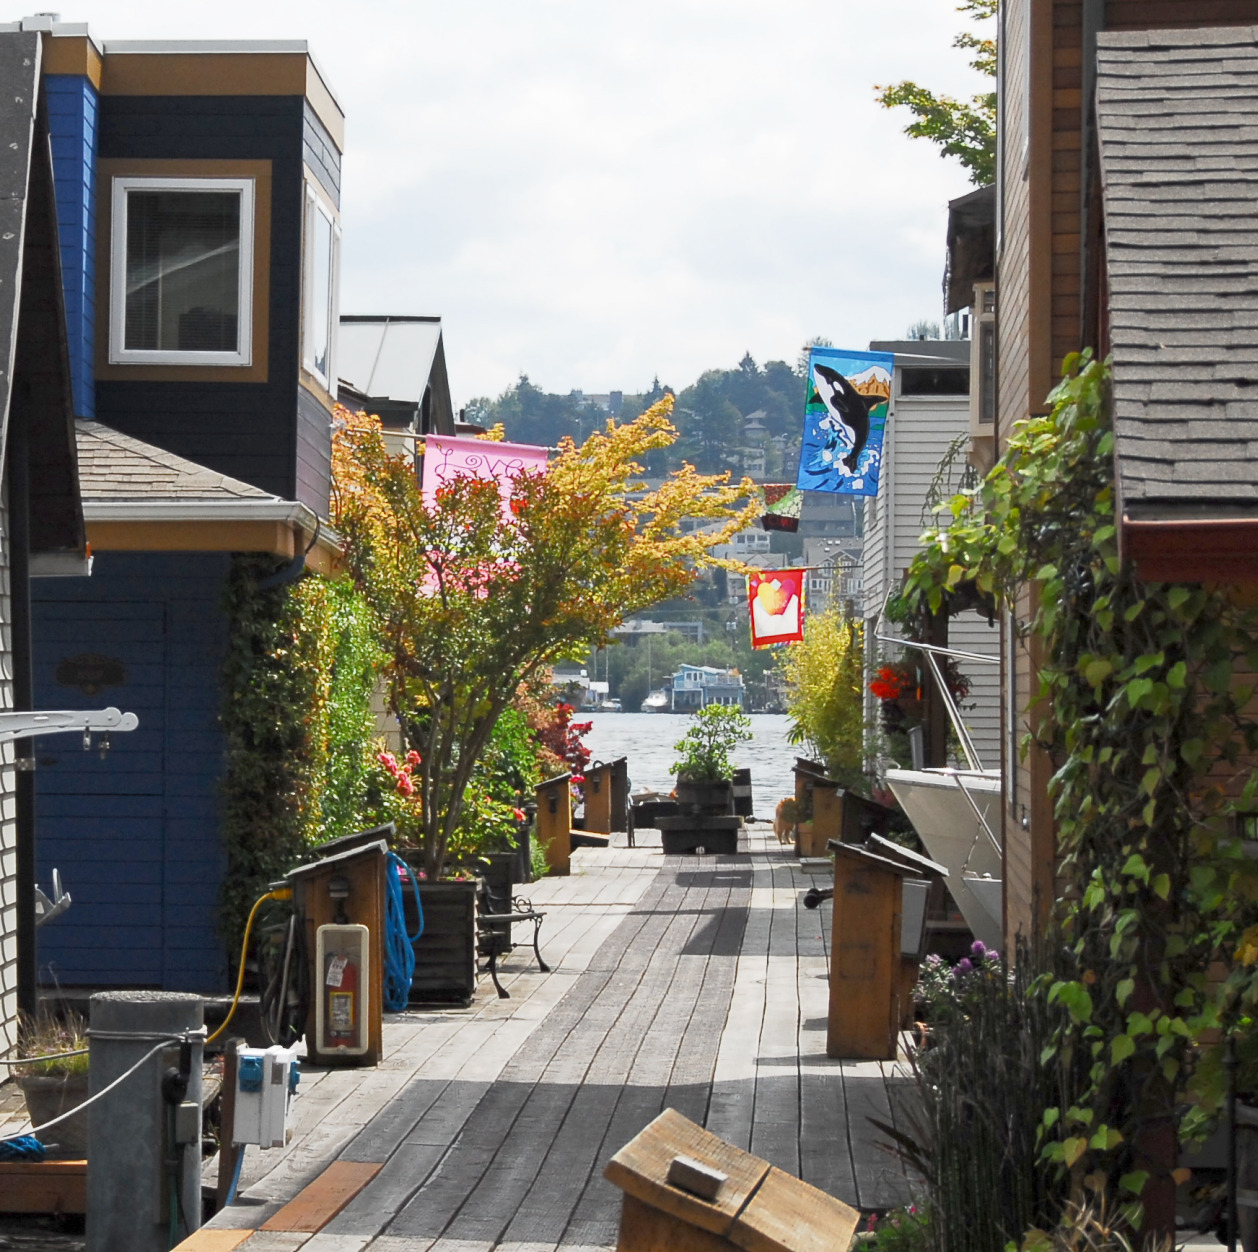 Seattle Houseboats – Seattle Houseboats in Lake Union and